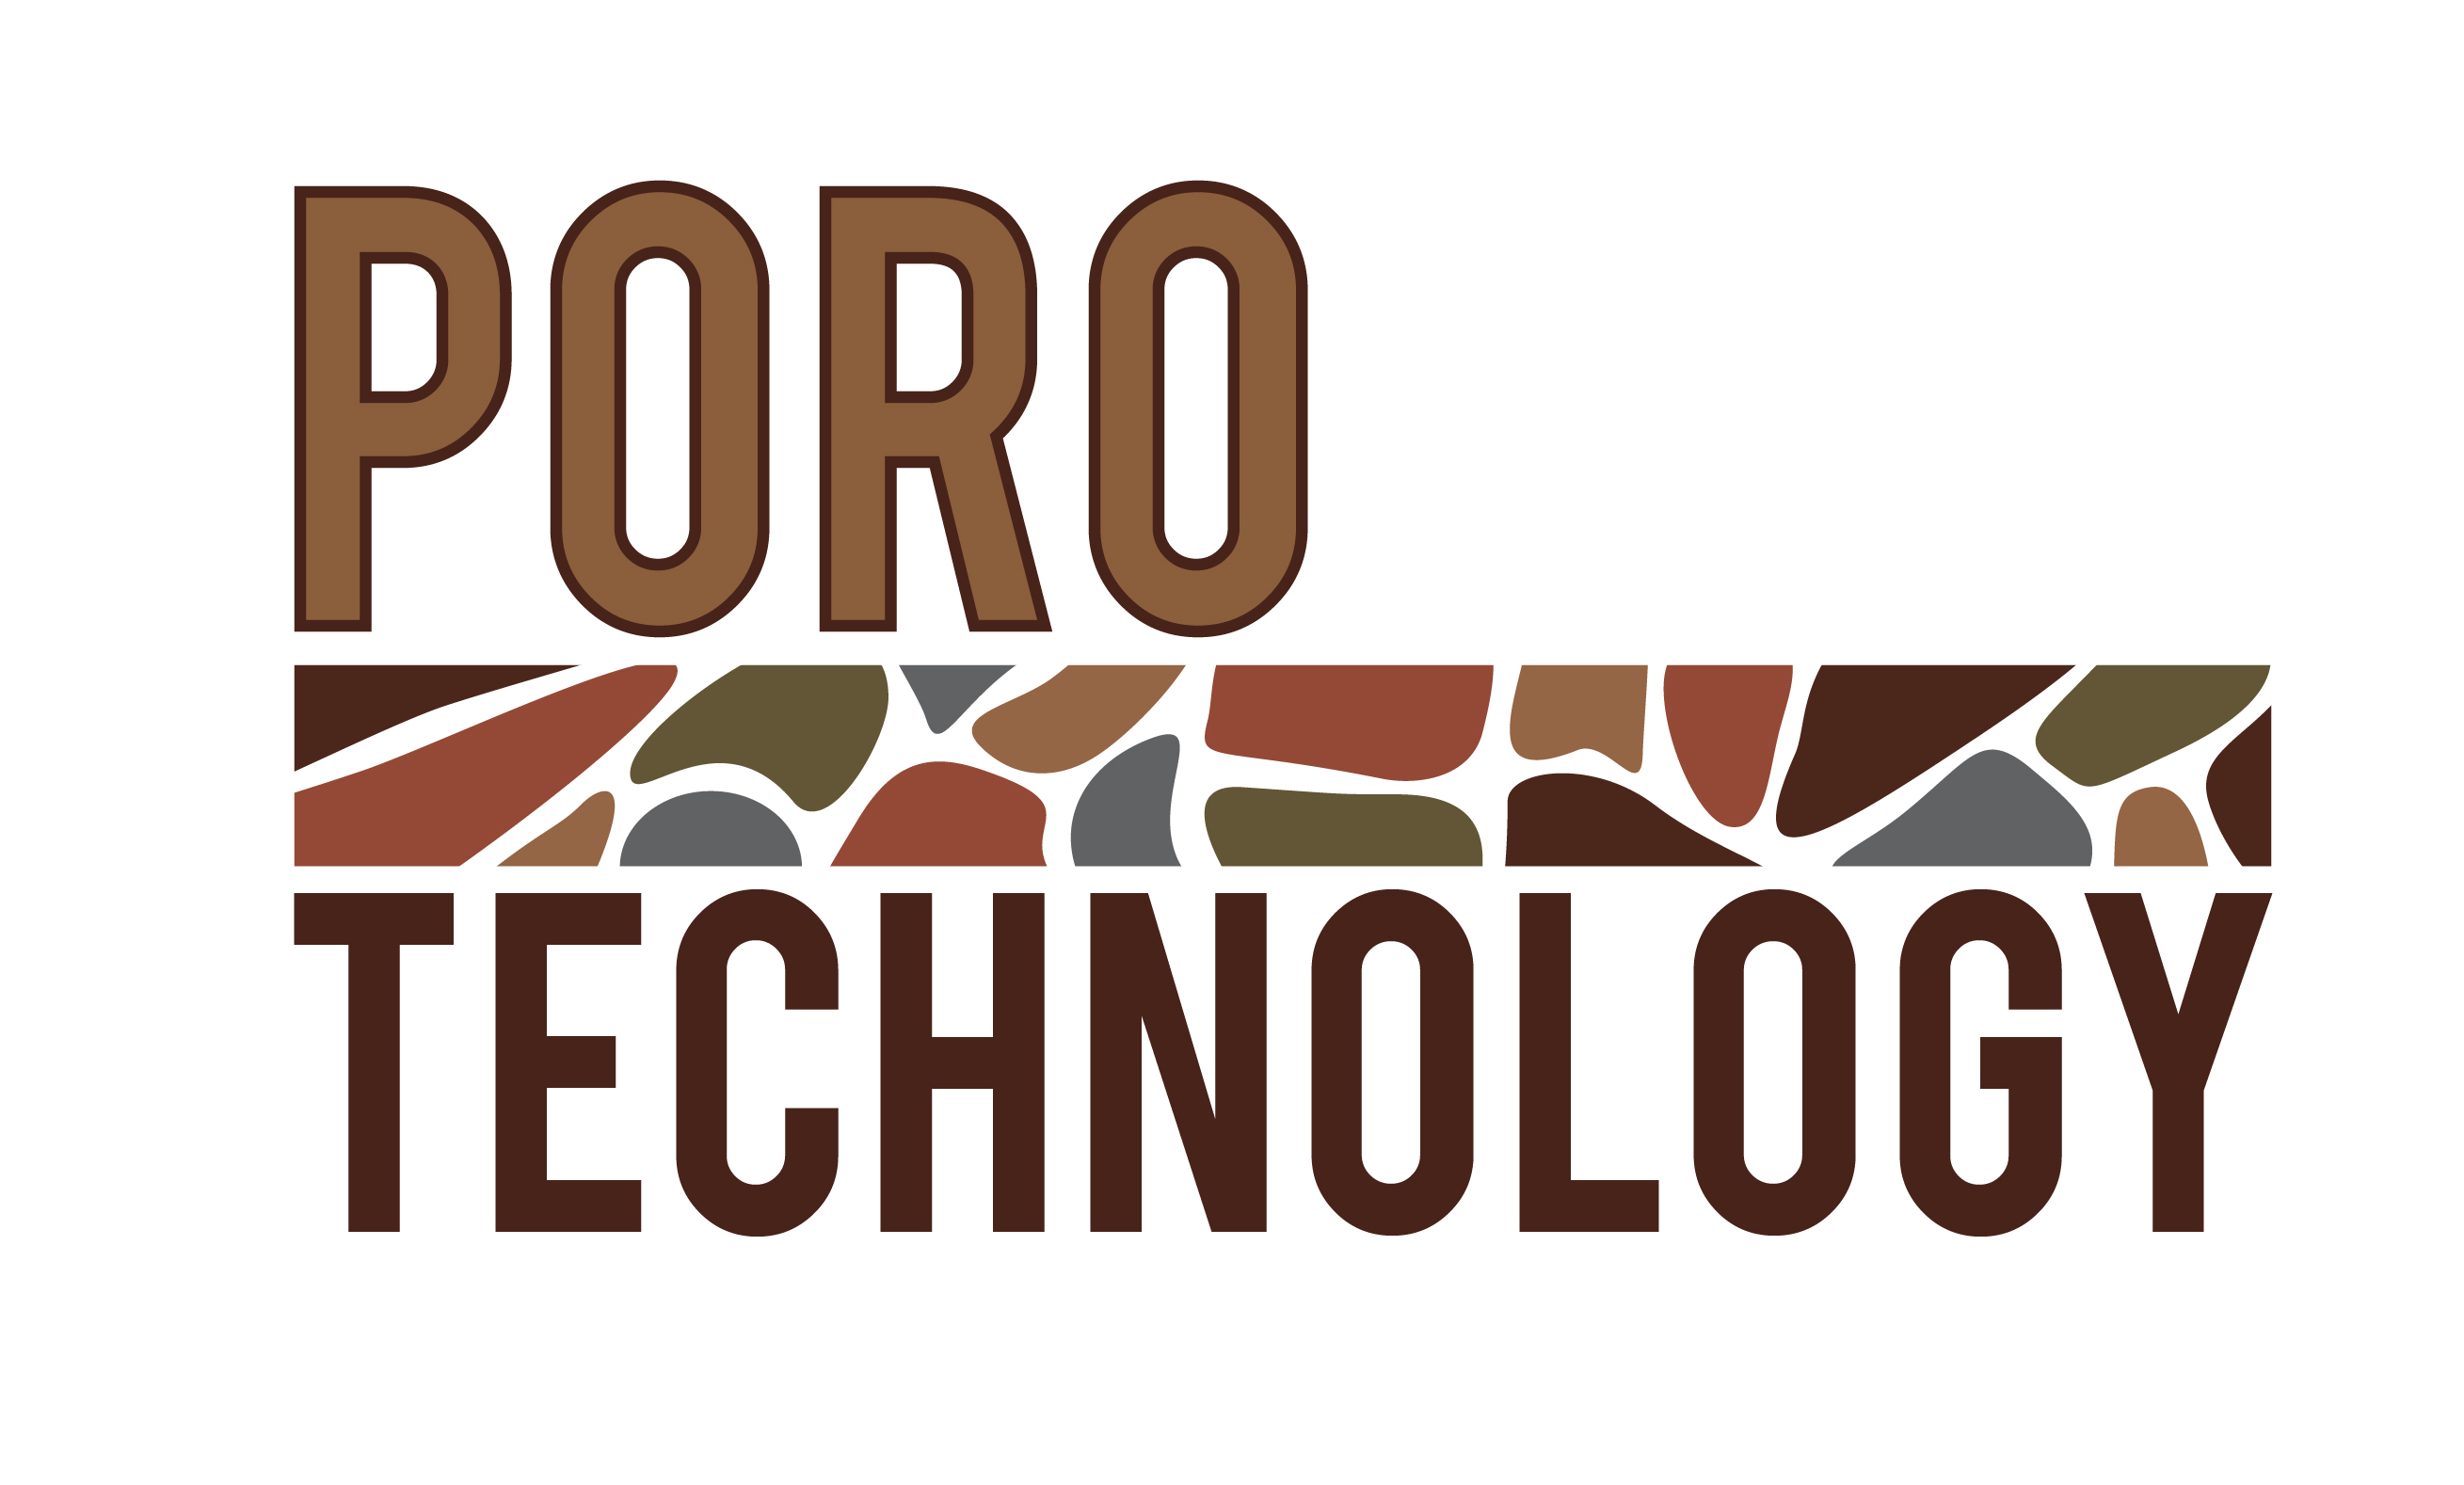 Micromeritics Instrument Corporation completed the acquisition of PoroTechnology